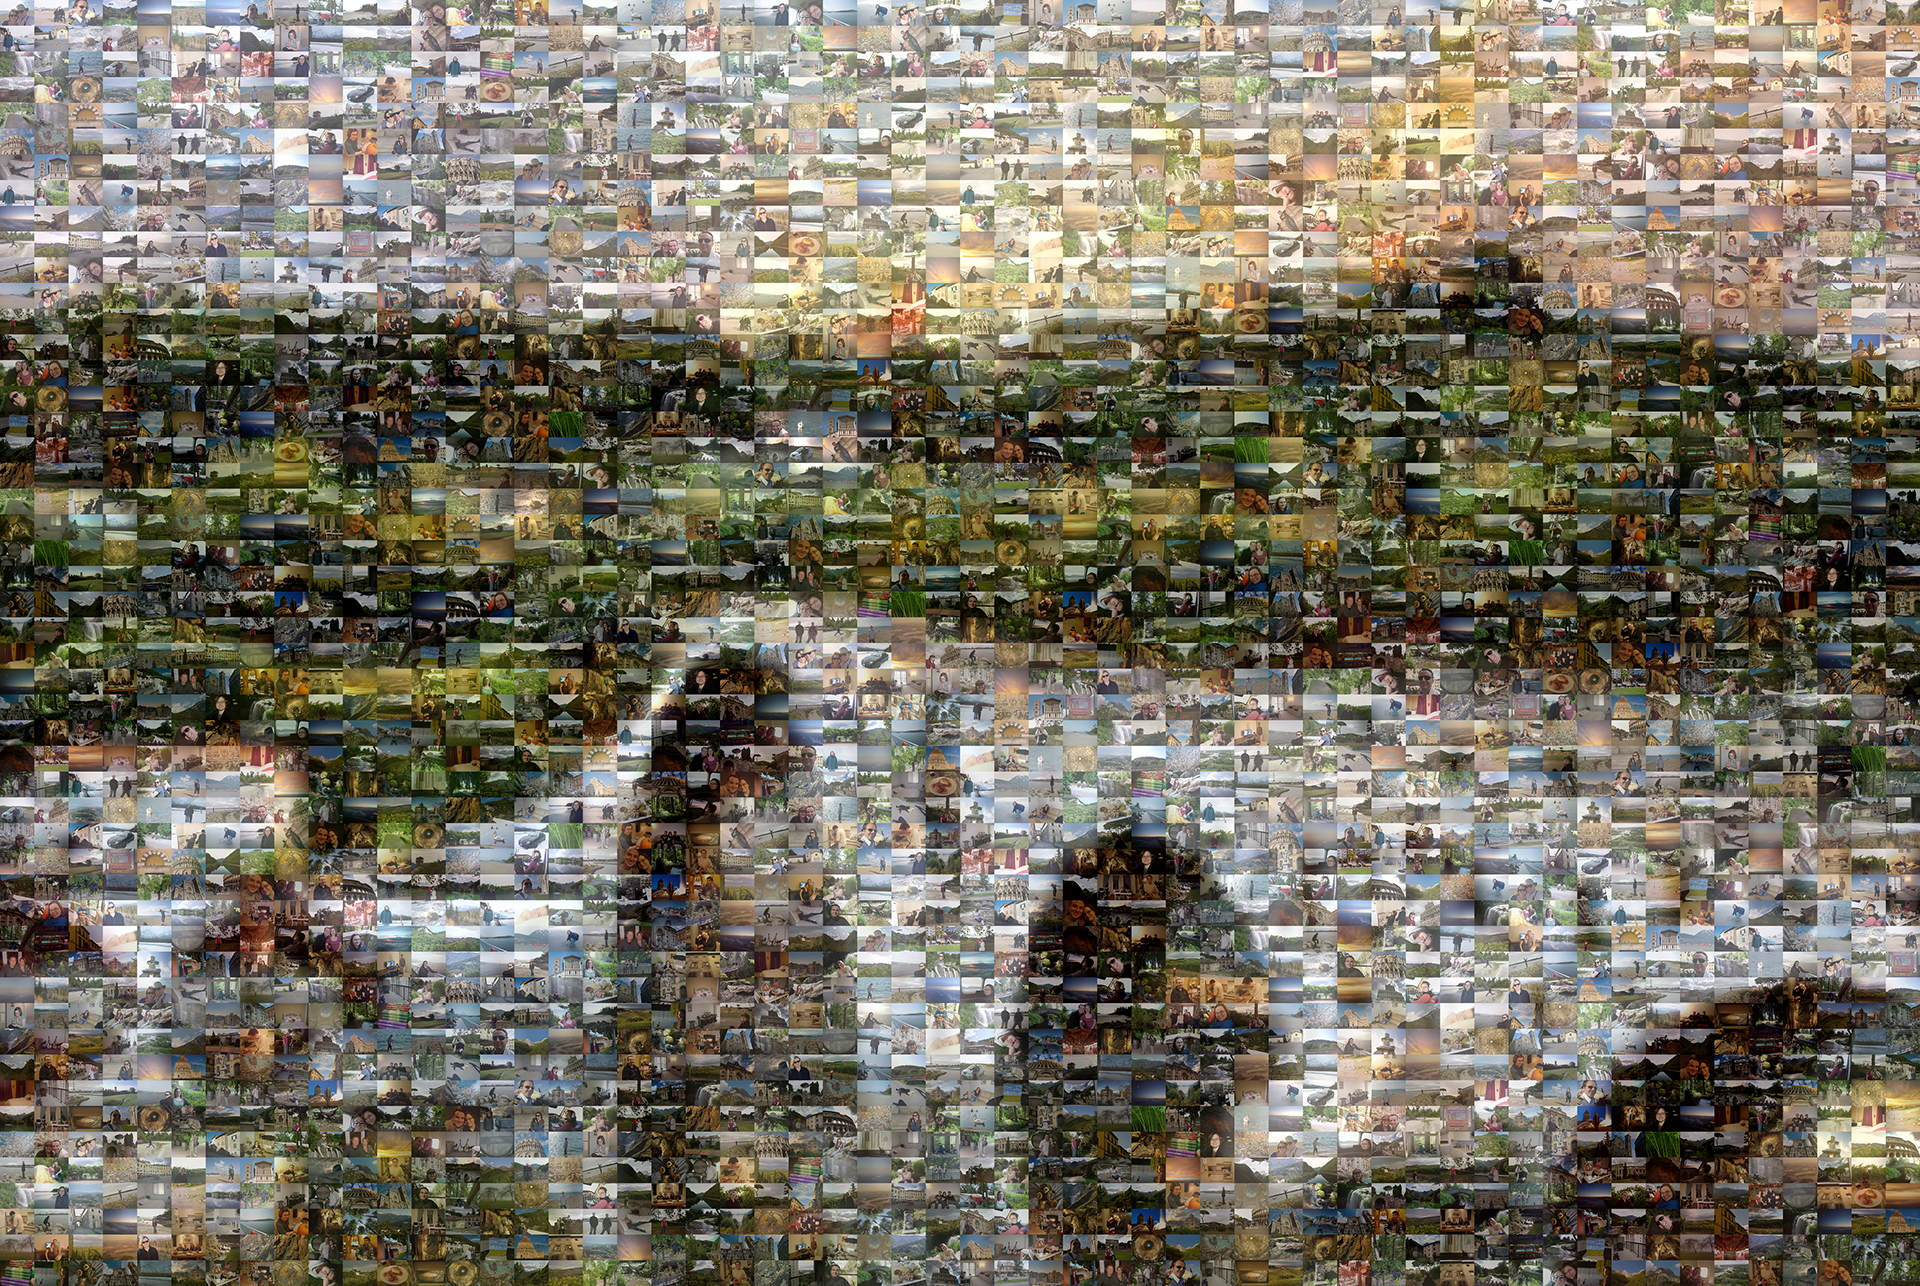 photo mosaic created using 307 travel photos